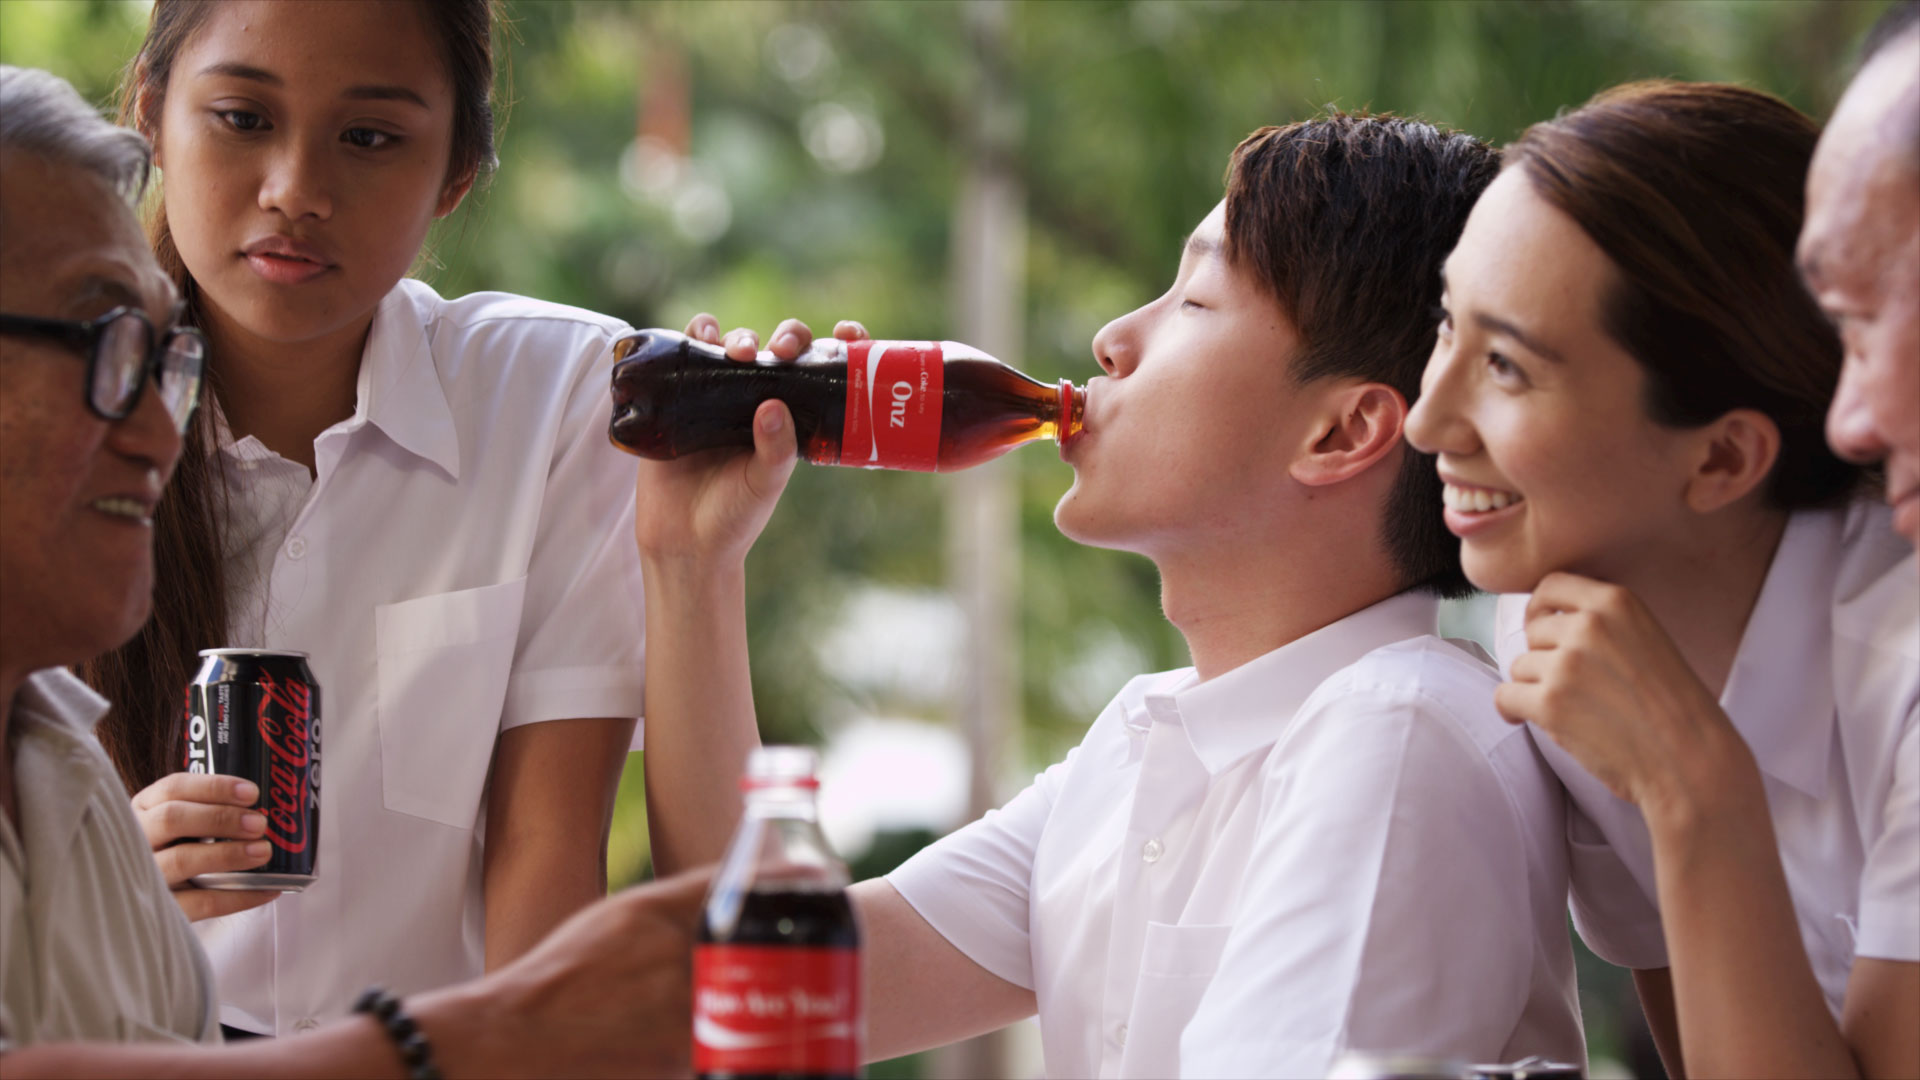 share a coke social media video